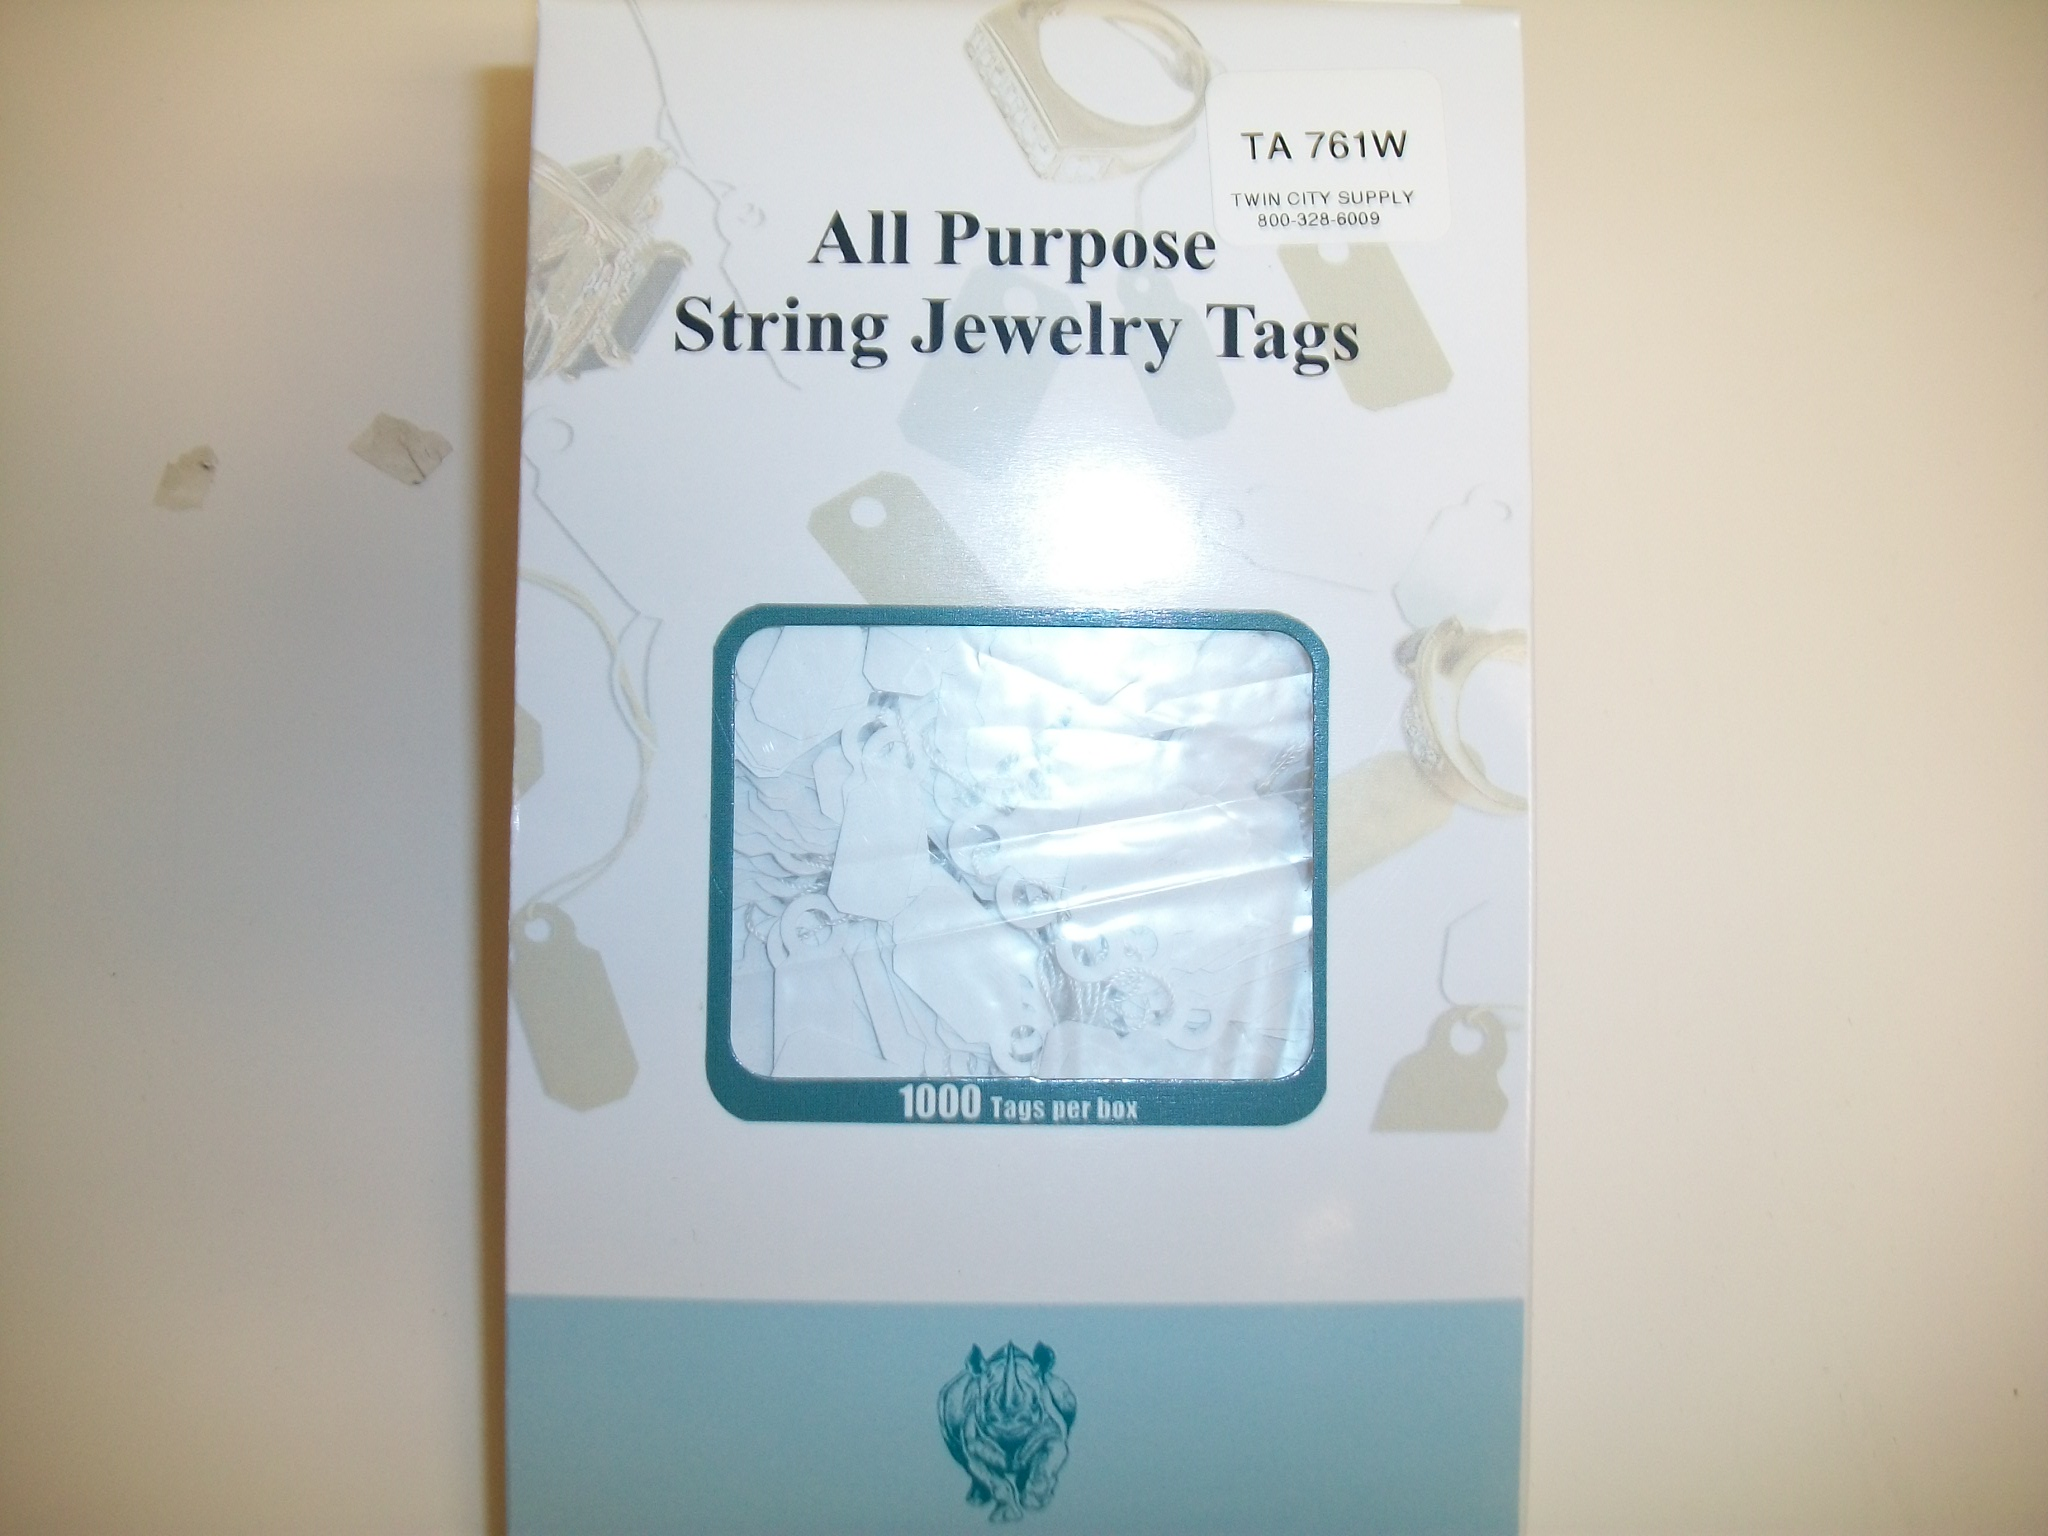 TA761W Jewelry String Tags--bx of 1000 Plastic White